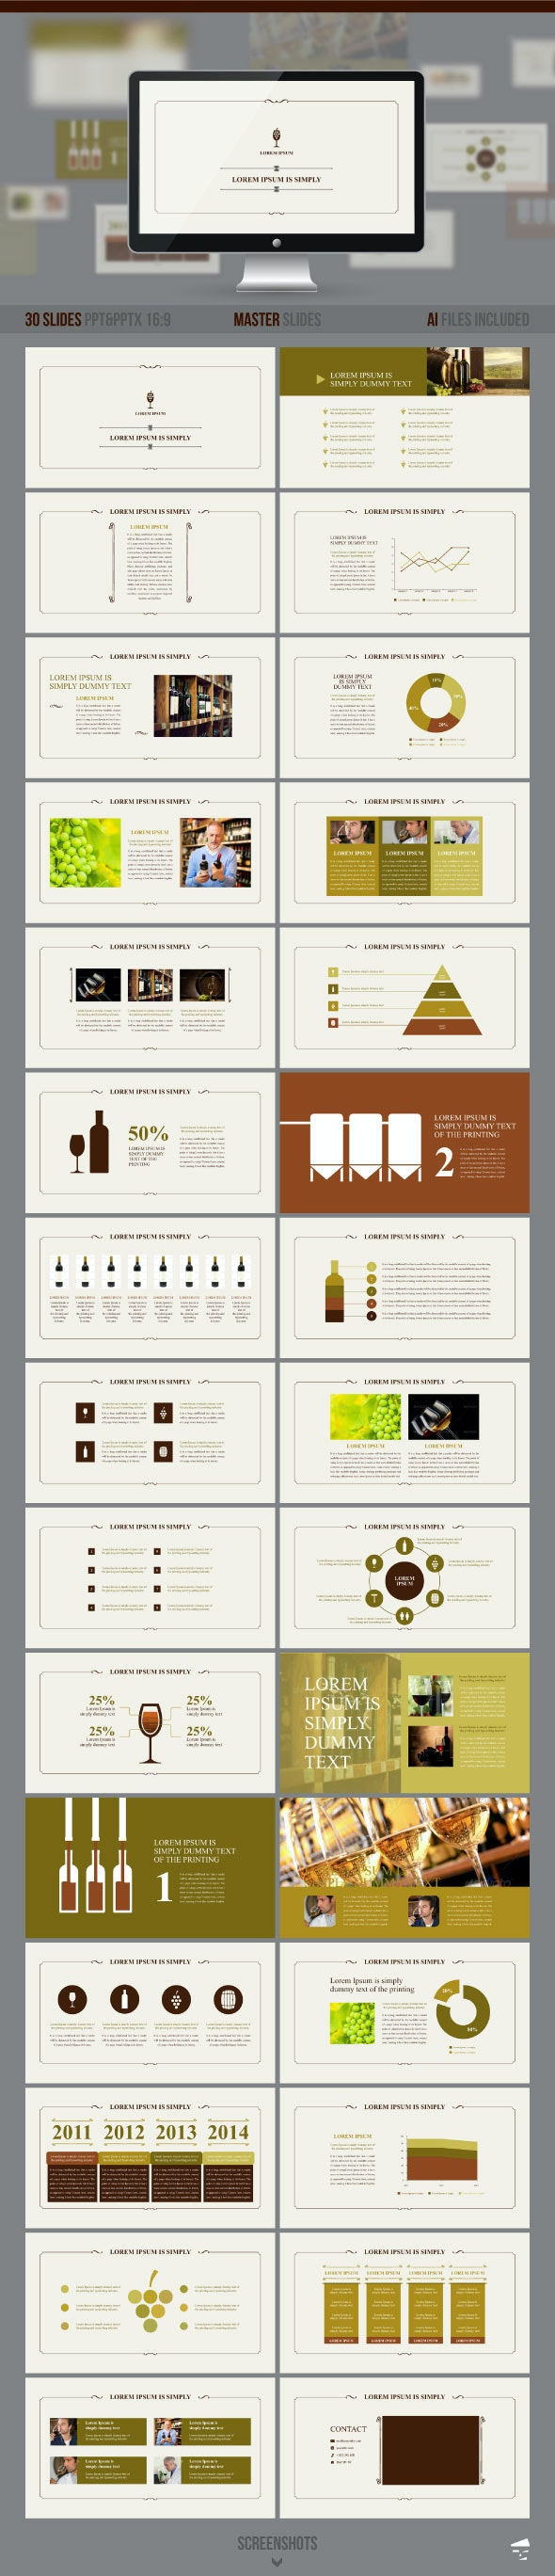 Presentation of Wine - Business PowerPoint Templates